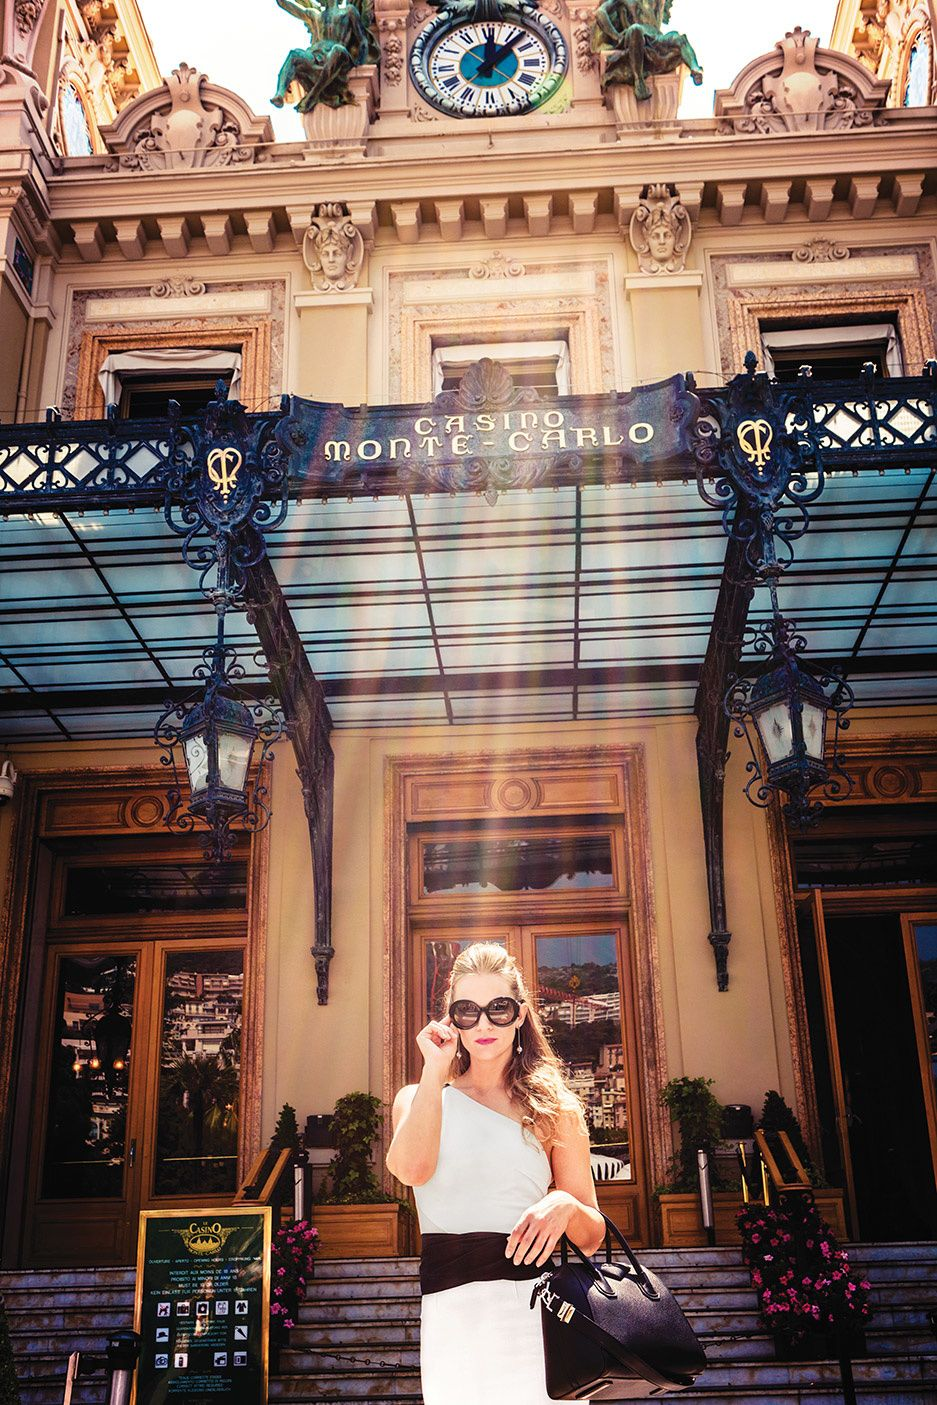 AJ Cook in large sunglasses and a white dress in front of Casino Monte Carlo